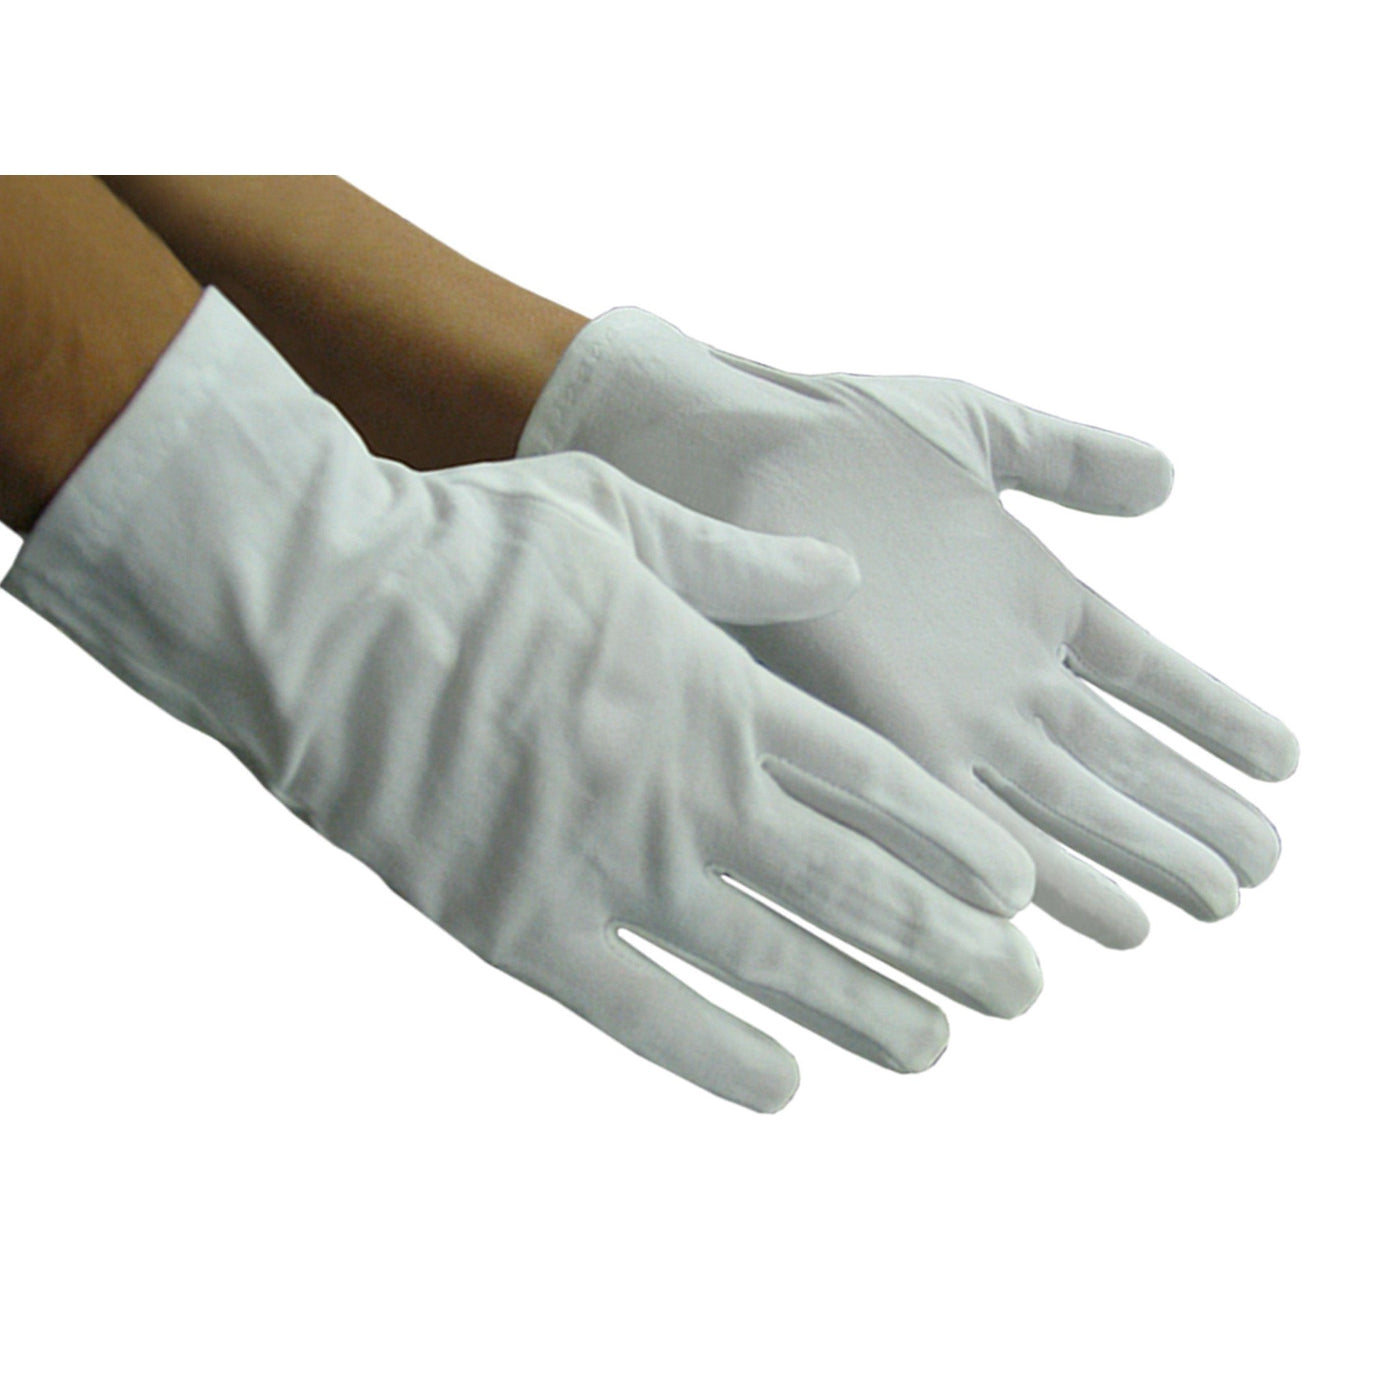 Pallbearer Gloves-Laboratory Accessory-Mortech Manufacturing Company Inc. Quality Stainless Steel Autopsy, Morgue, Funeral Home, Necropsy, Veterinary / Anatomy, Dissection Equipment and Accessories